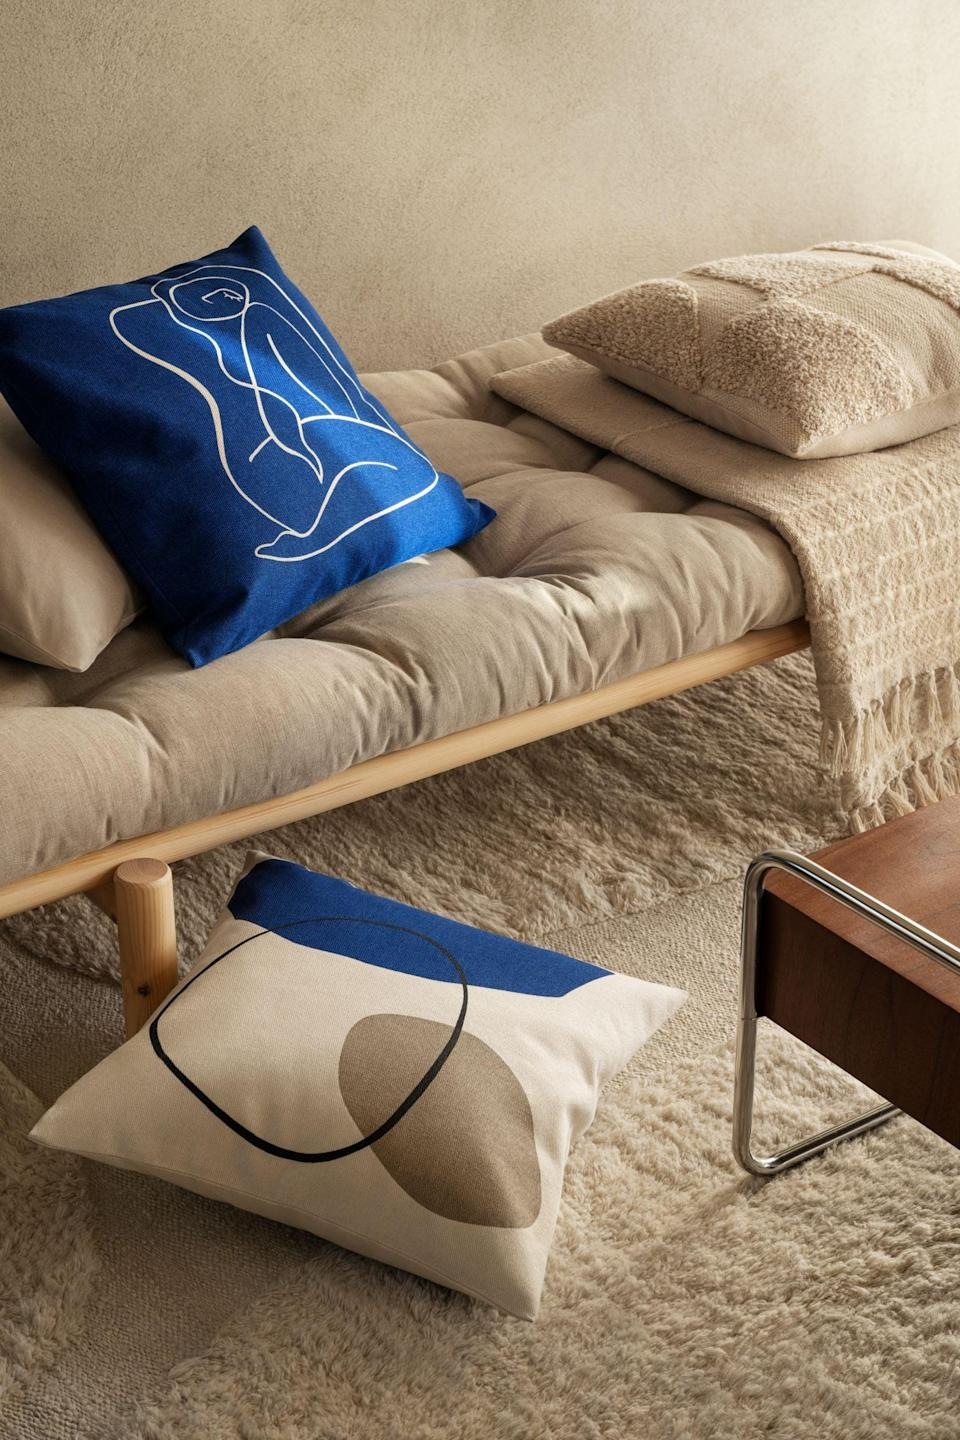 <p>Calling all minimalists! This fun <span>Cotton Canvas Cushion Cover</span> ($6) was made for you. The abstract silhouette makes it so much cooler.</p>